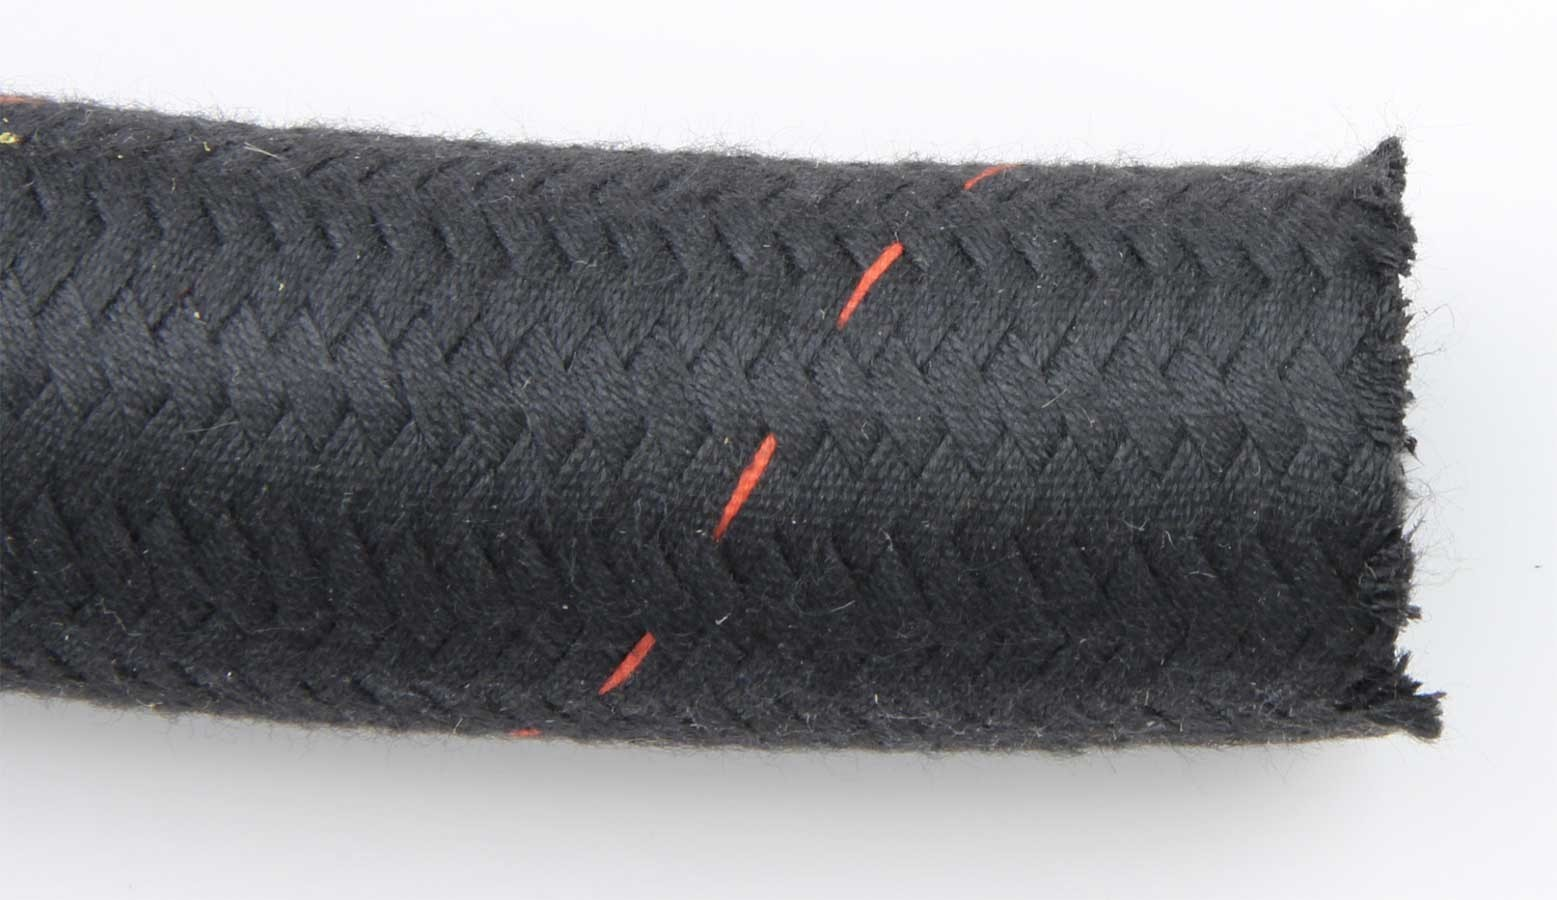 Aeroquip FCU0810 Hose, Startlite Racing Hose, 8 AN, 10 ft, Braided Nomex / Kevlar, AQP Smooth Bore, Black, Each